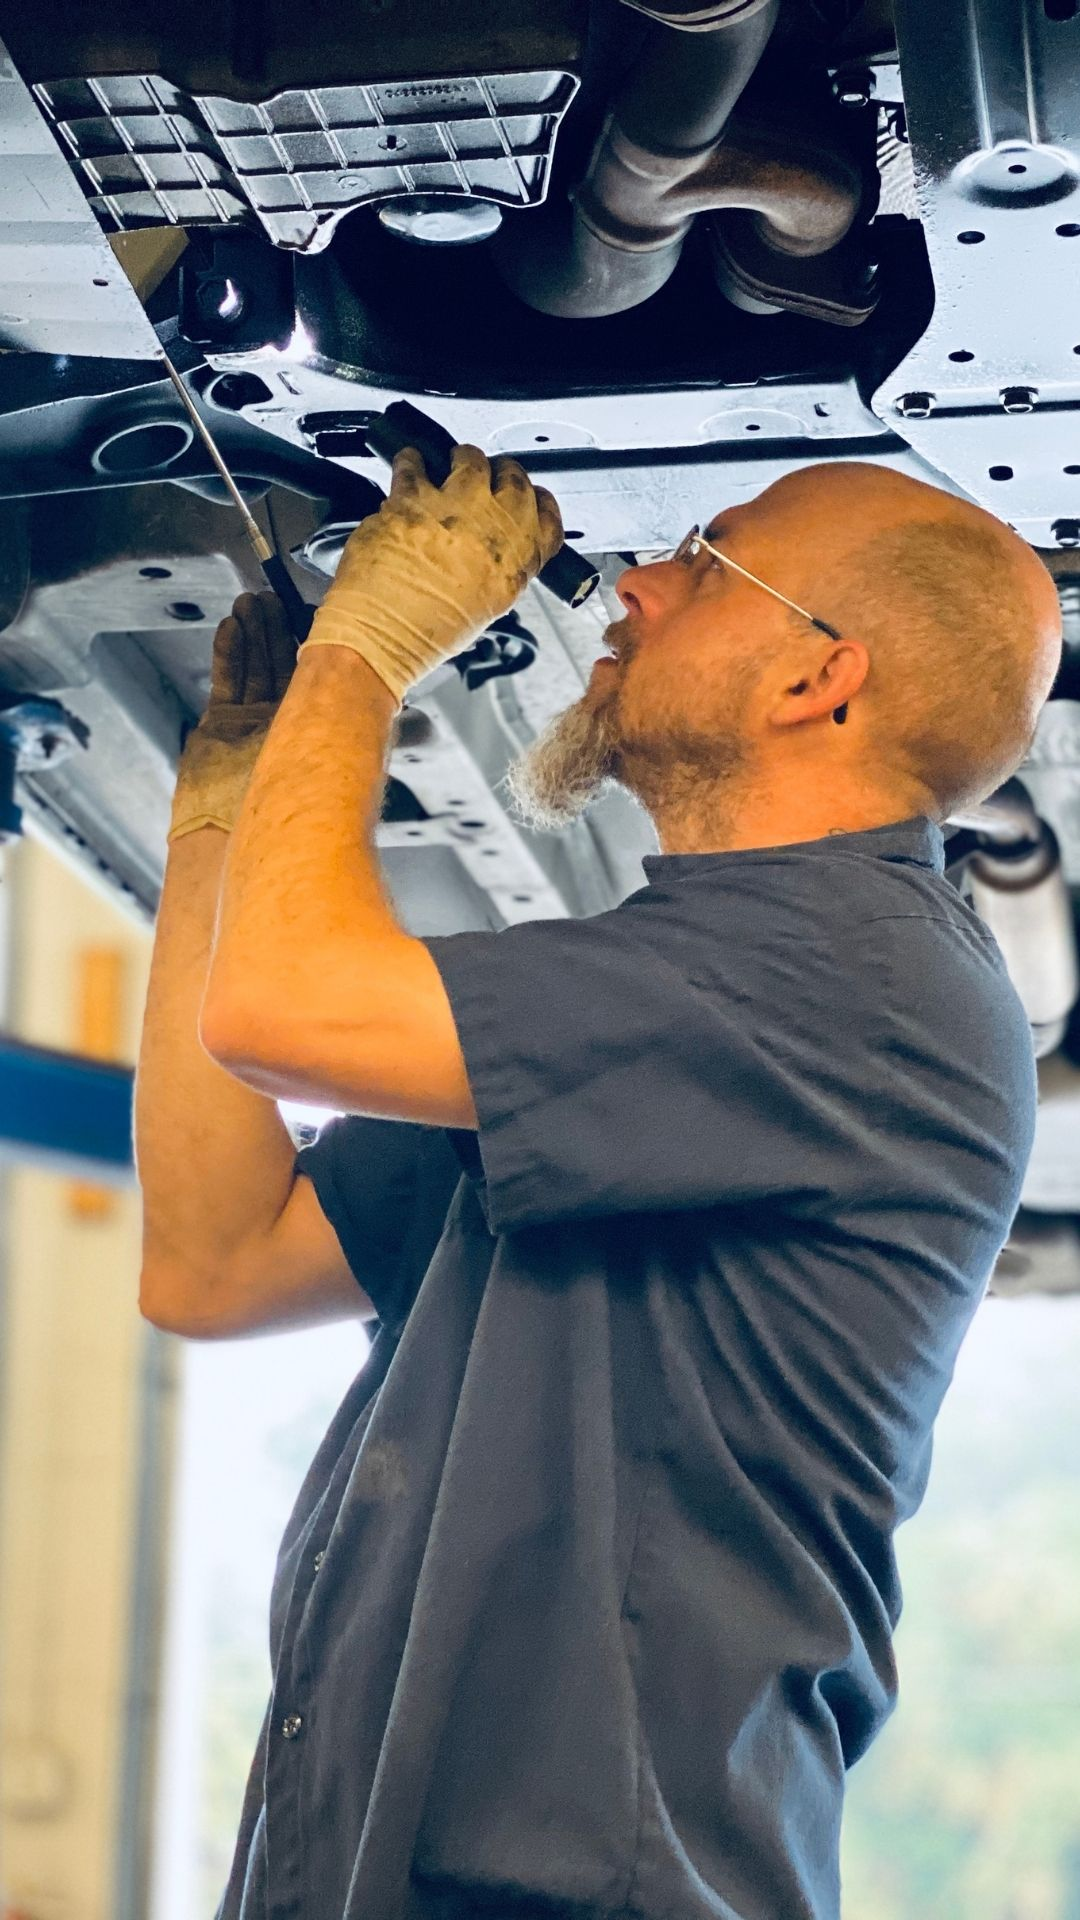 auto transmission repair at auto solutions of ormond beach employee is repairing a vehicle for car repairs